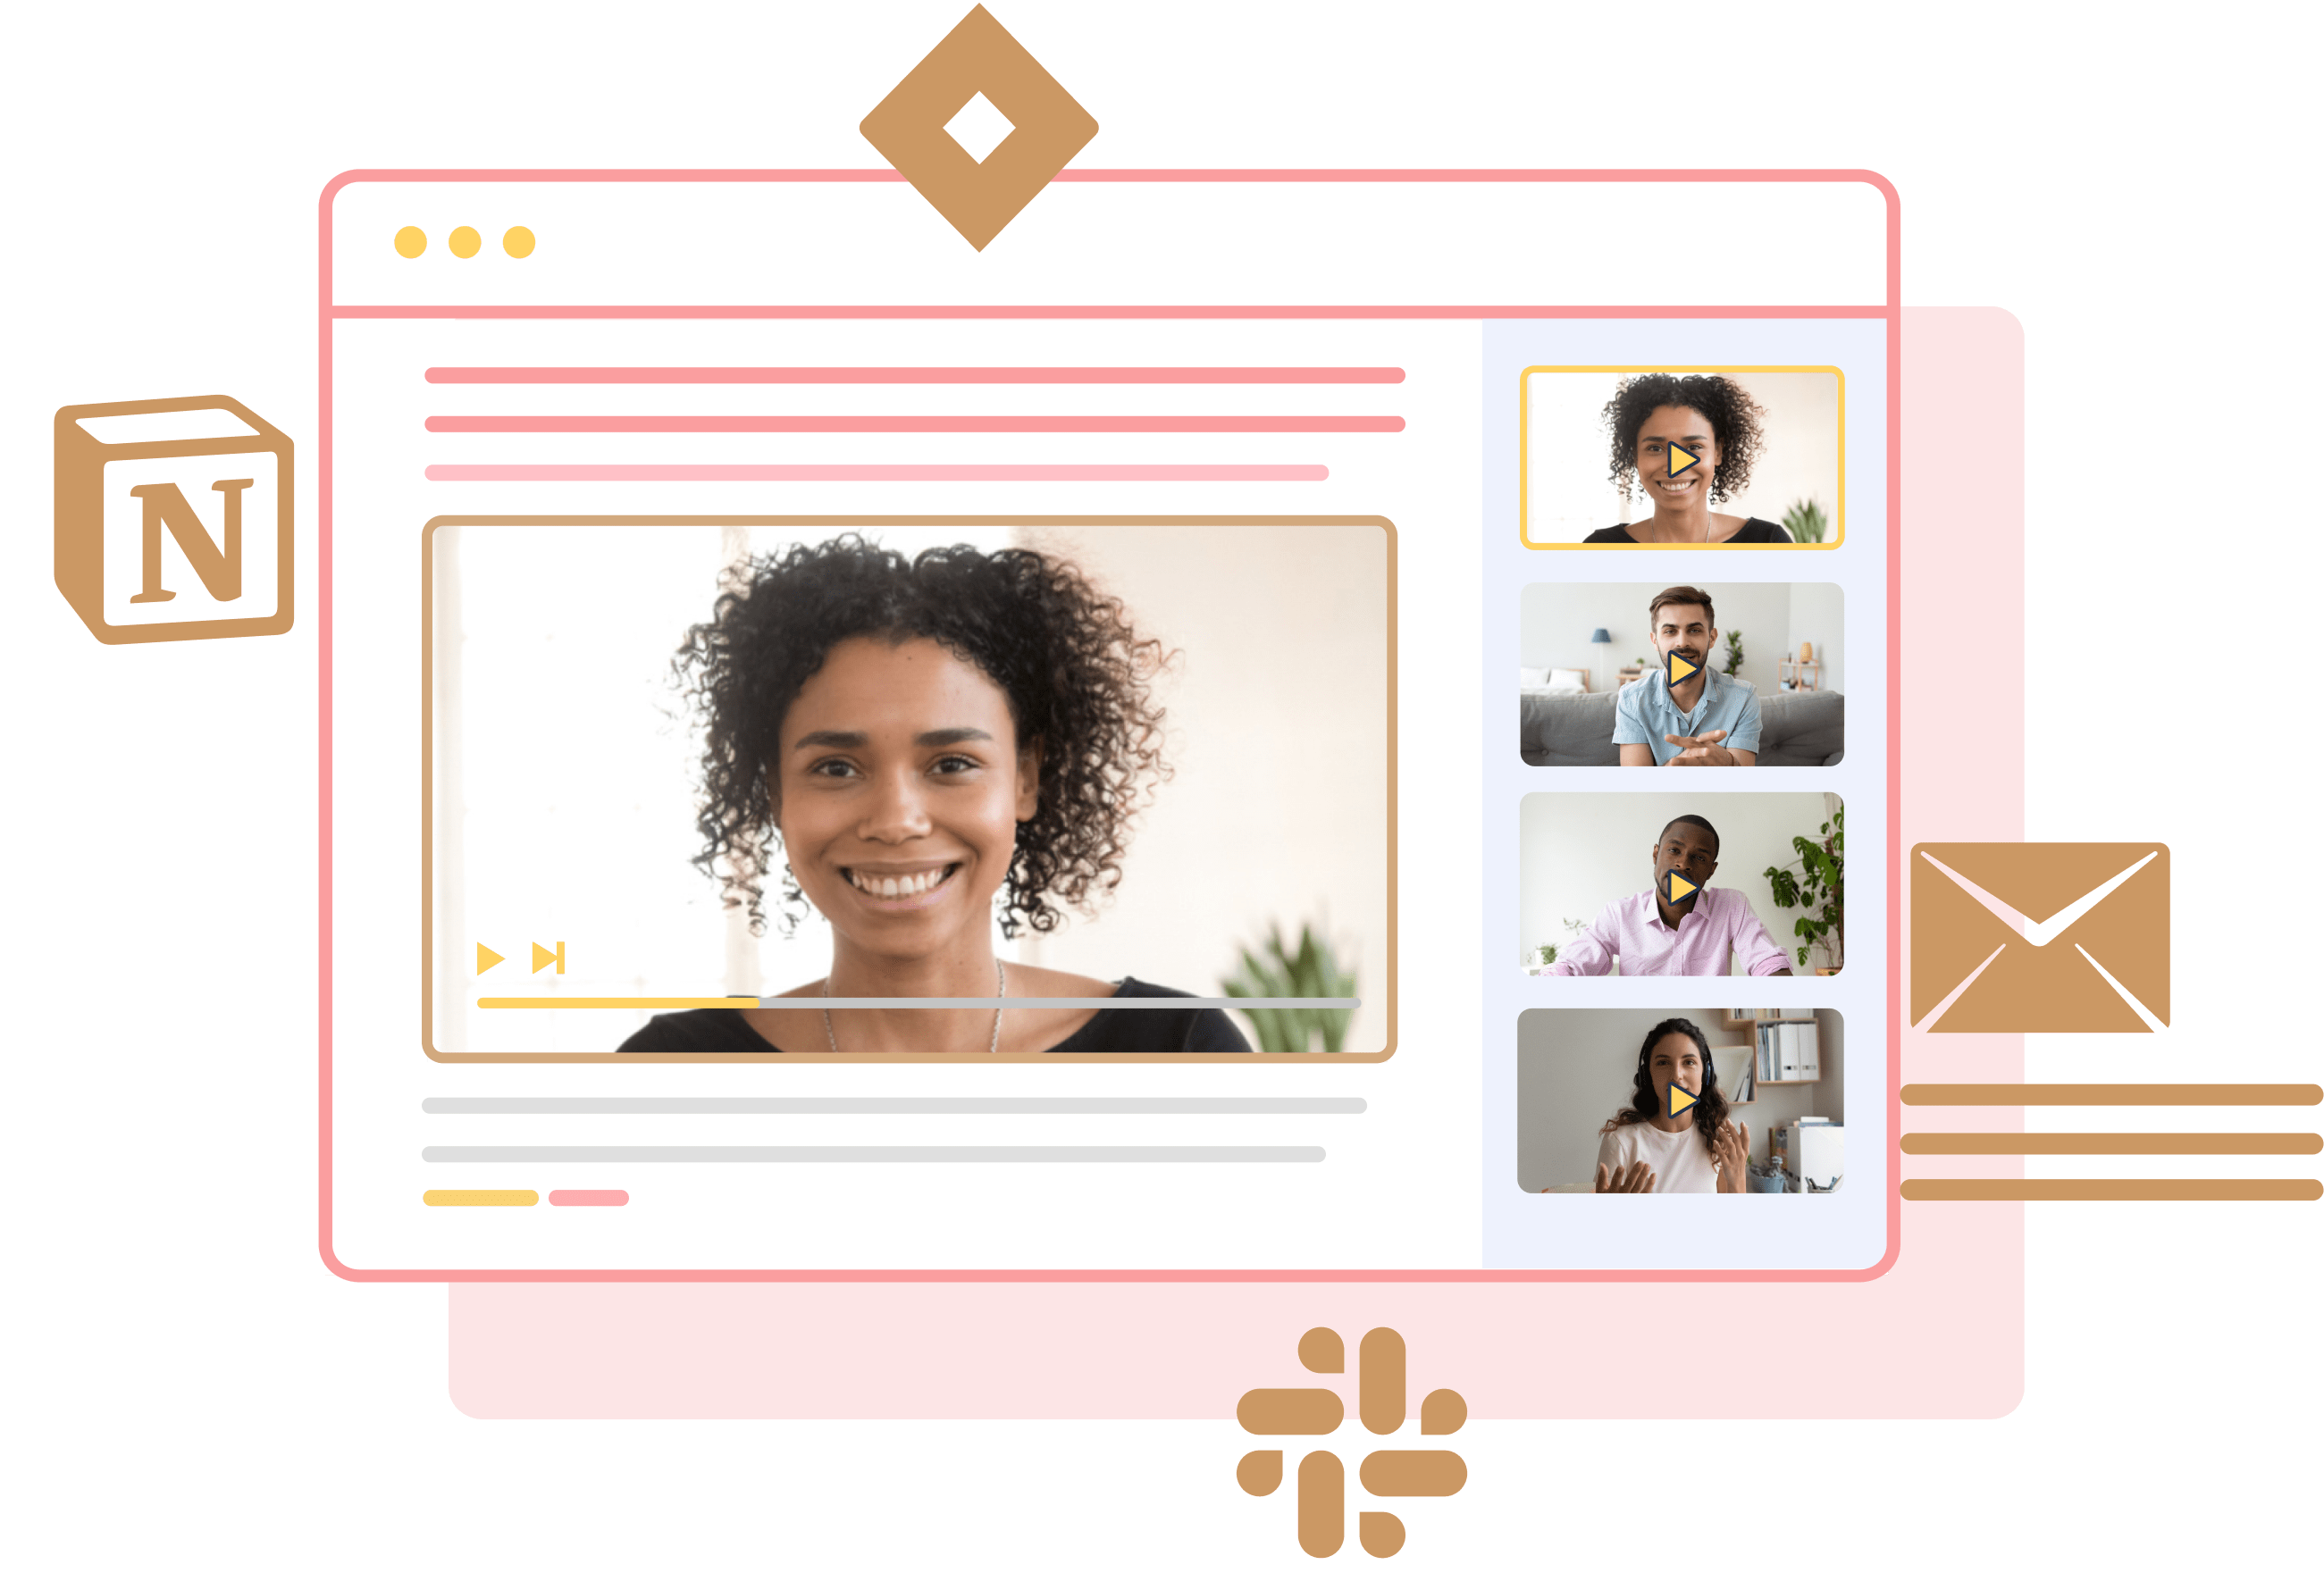 Share customer stories within minutes